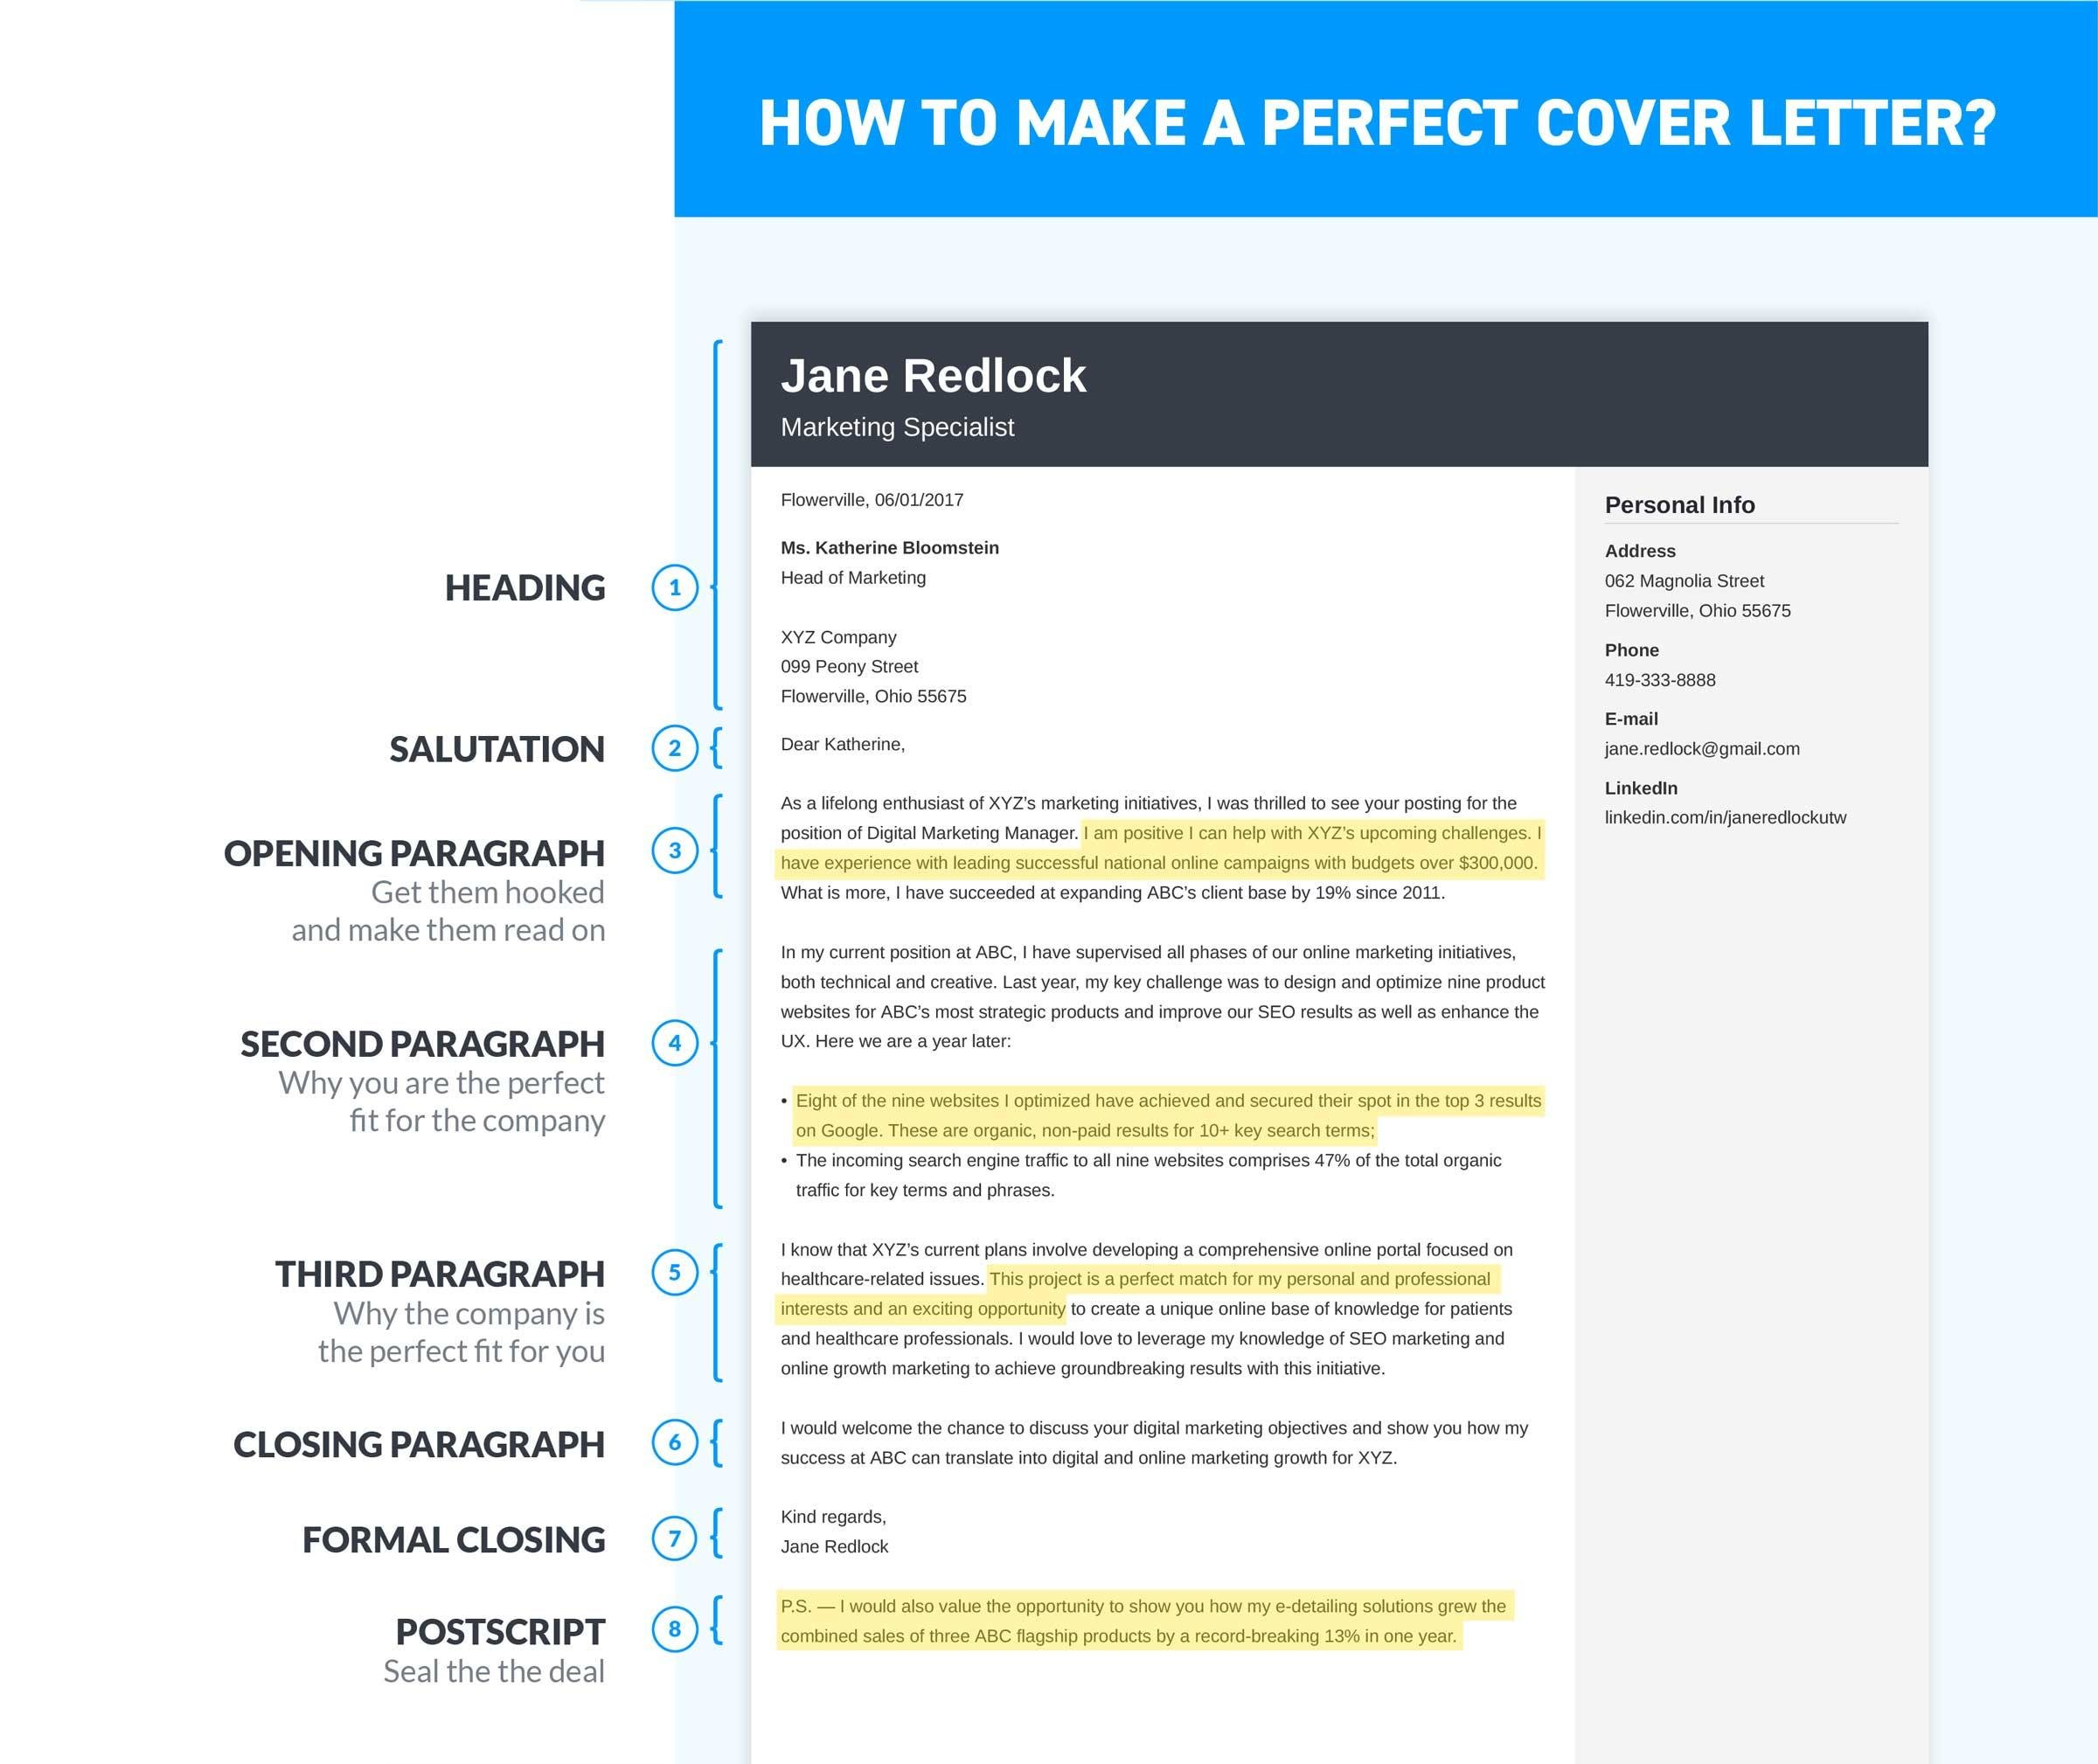 How to write a cover letter in 8 simple steps 12 examples how to make a perfect cover letter infographic madrichimfo Image collections